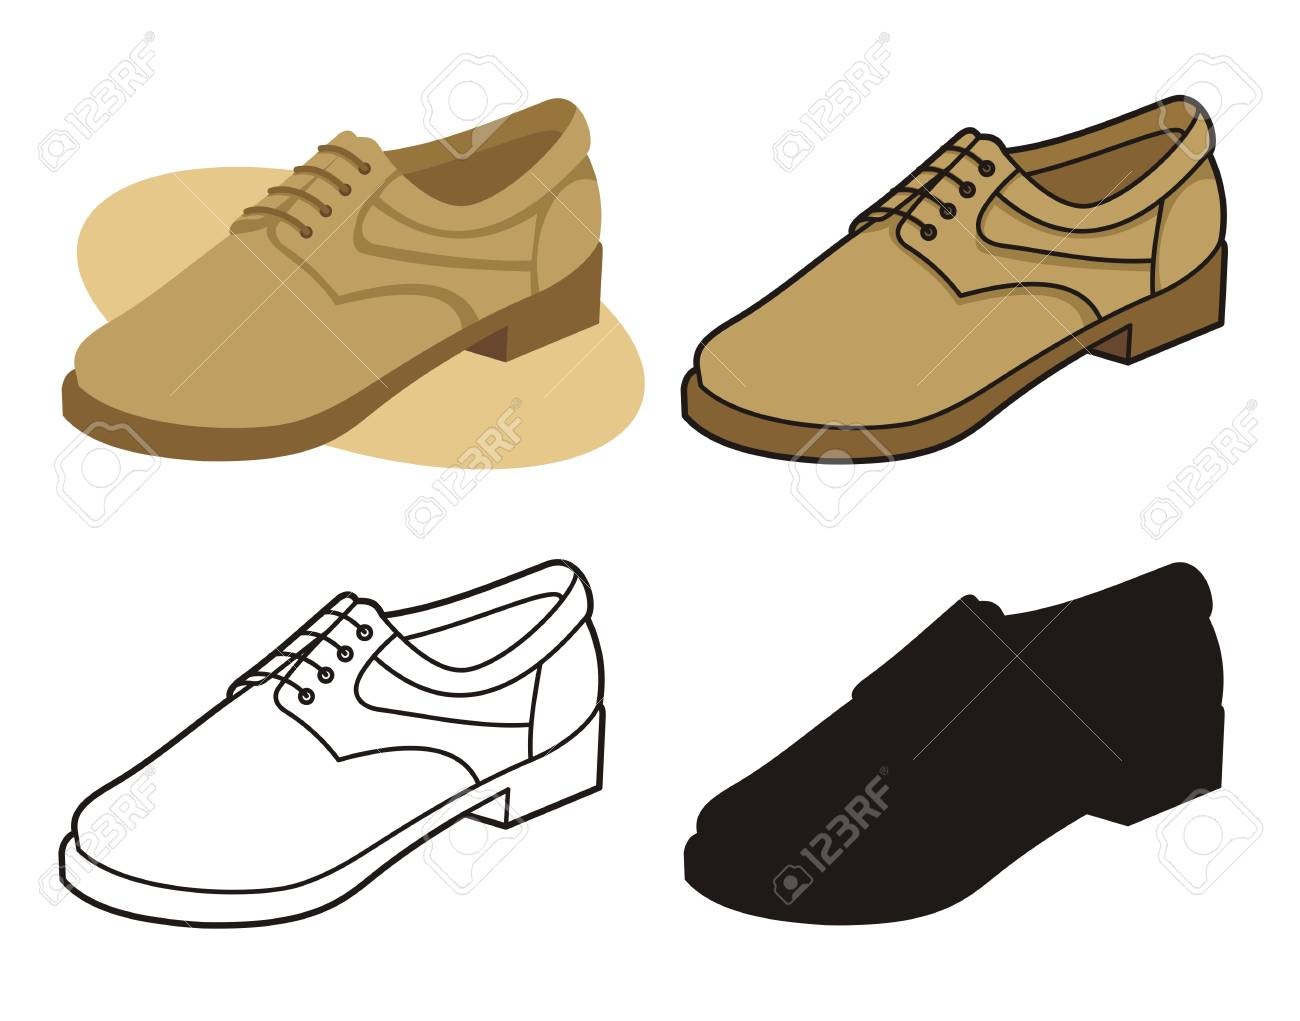 Male shoe in four versions 4 - 2626804